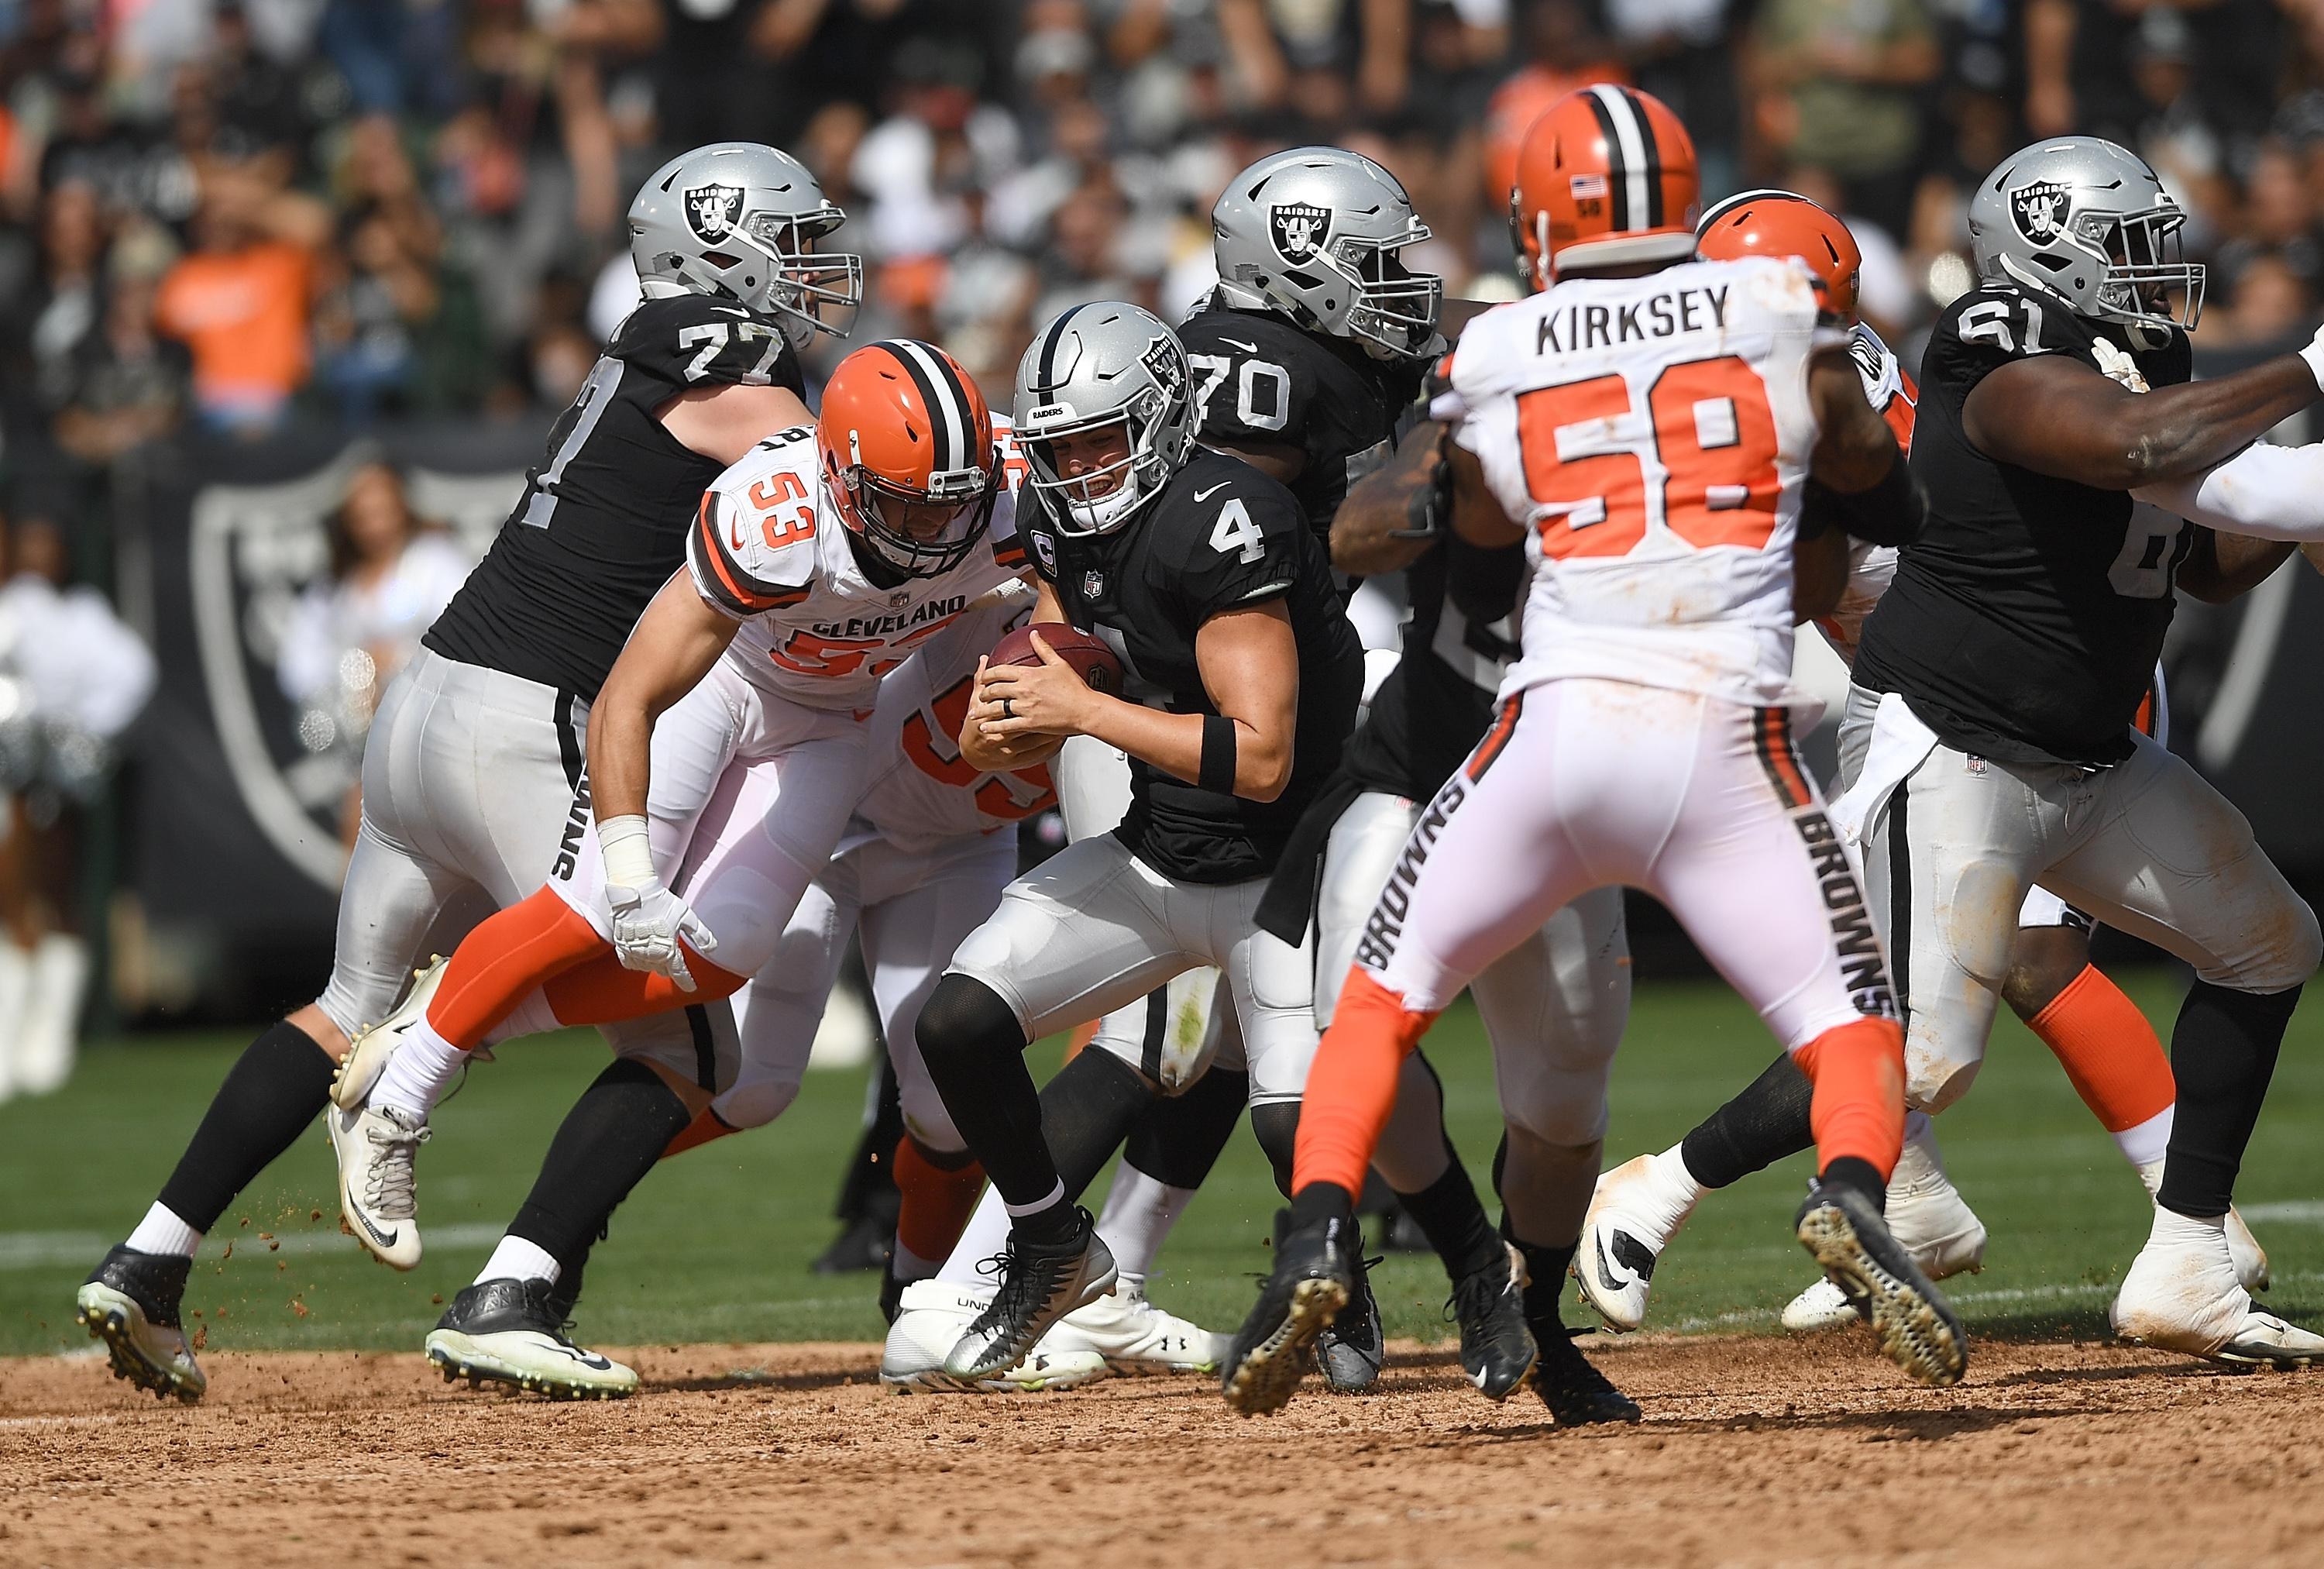 OAKLAND, CA - SEPTEMBER 30:  Joe Schobert #53 of the Cleveland Browns sacks quarterback Derek Carr #4 of the Oakland Raiders during the second quarter of their NFL football game at Oakland-Alameda County Coliseum on September 30, 2018 in Oakland, California.  (Photo by Thearon W. Henderson/Getty Images)